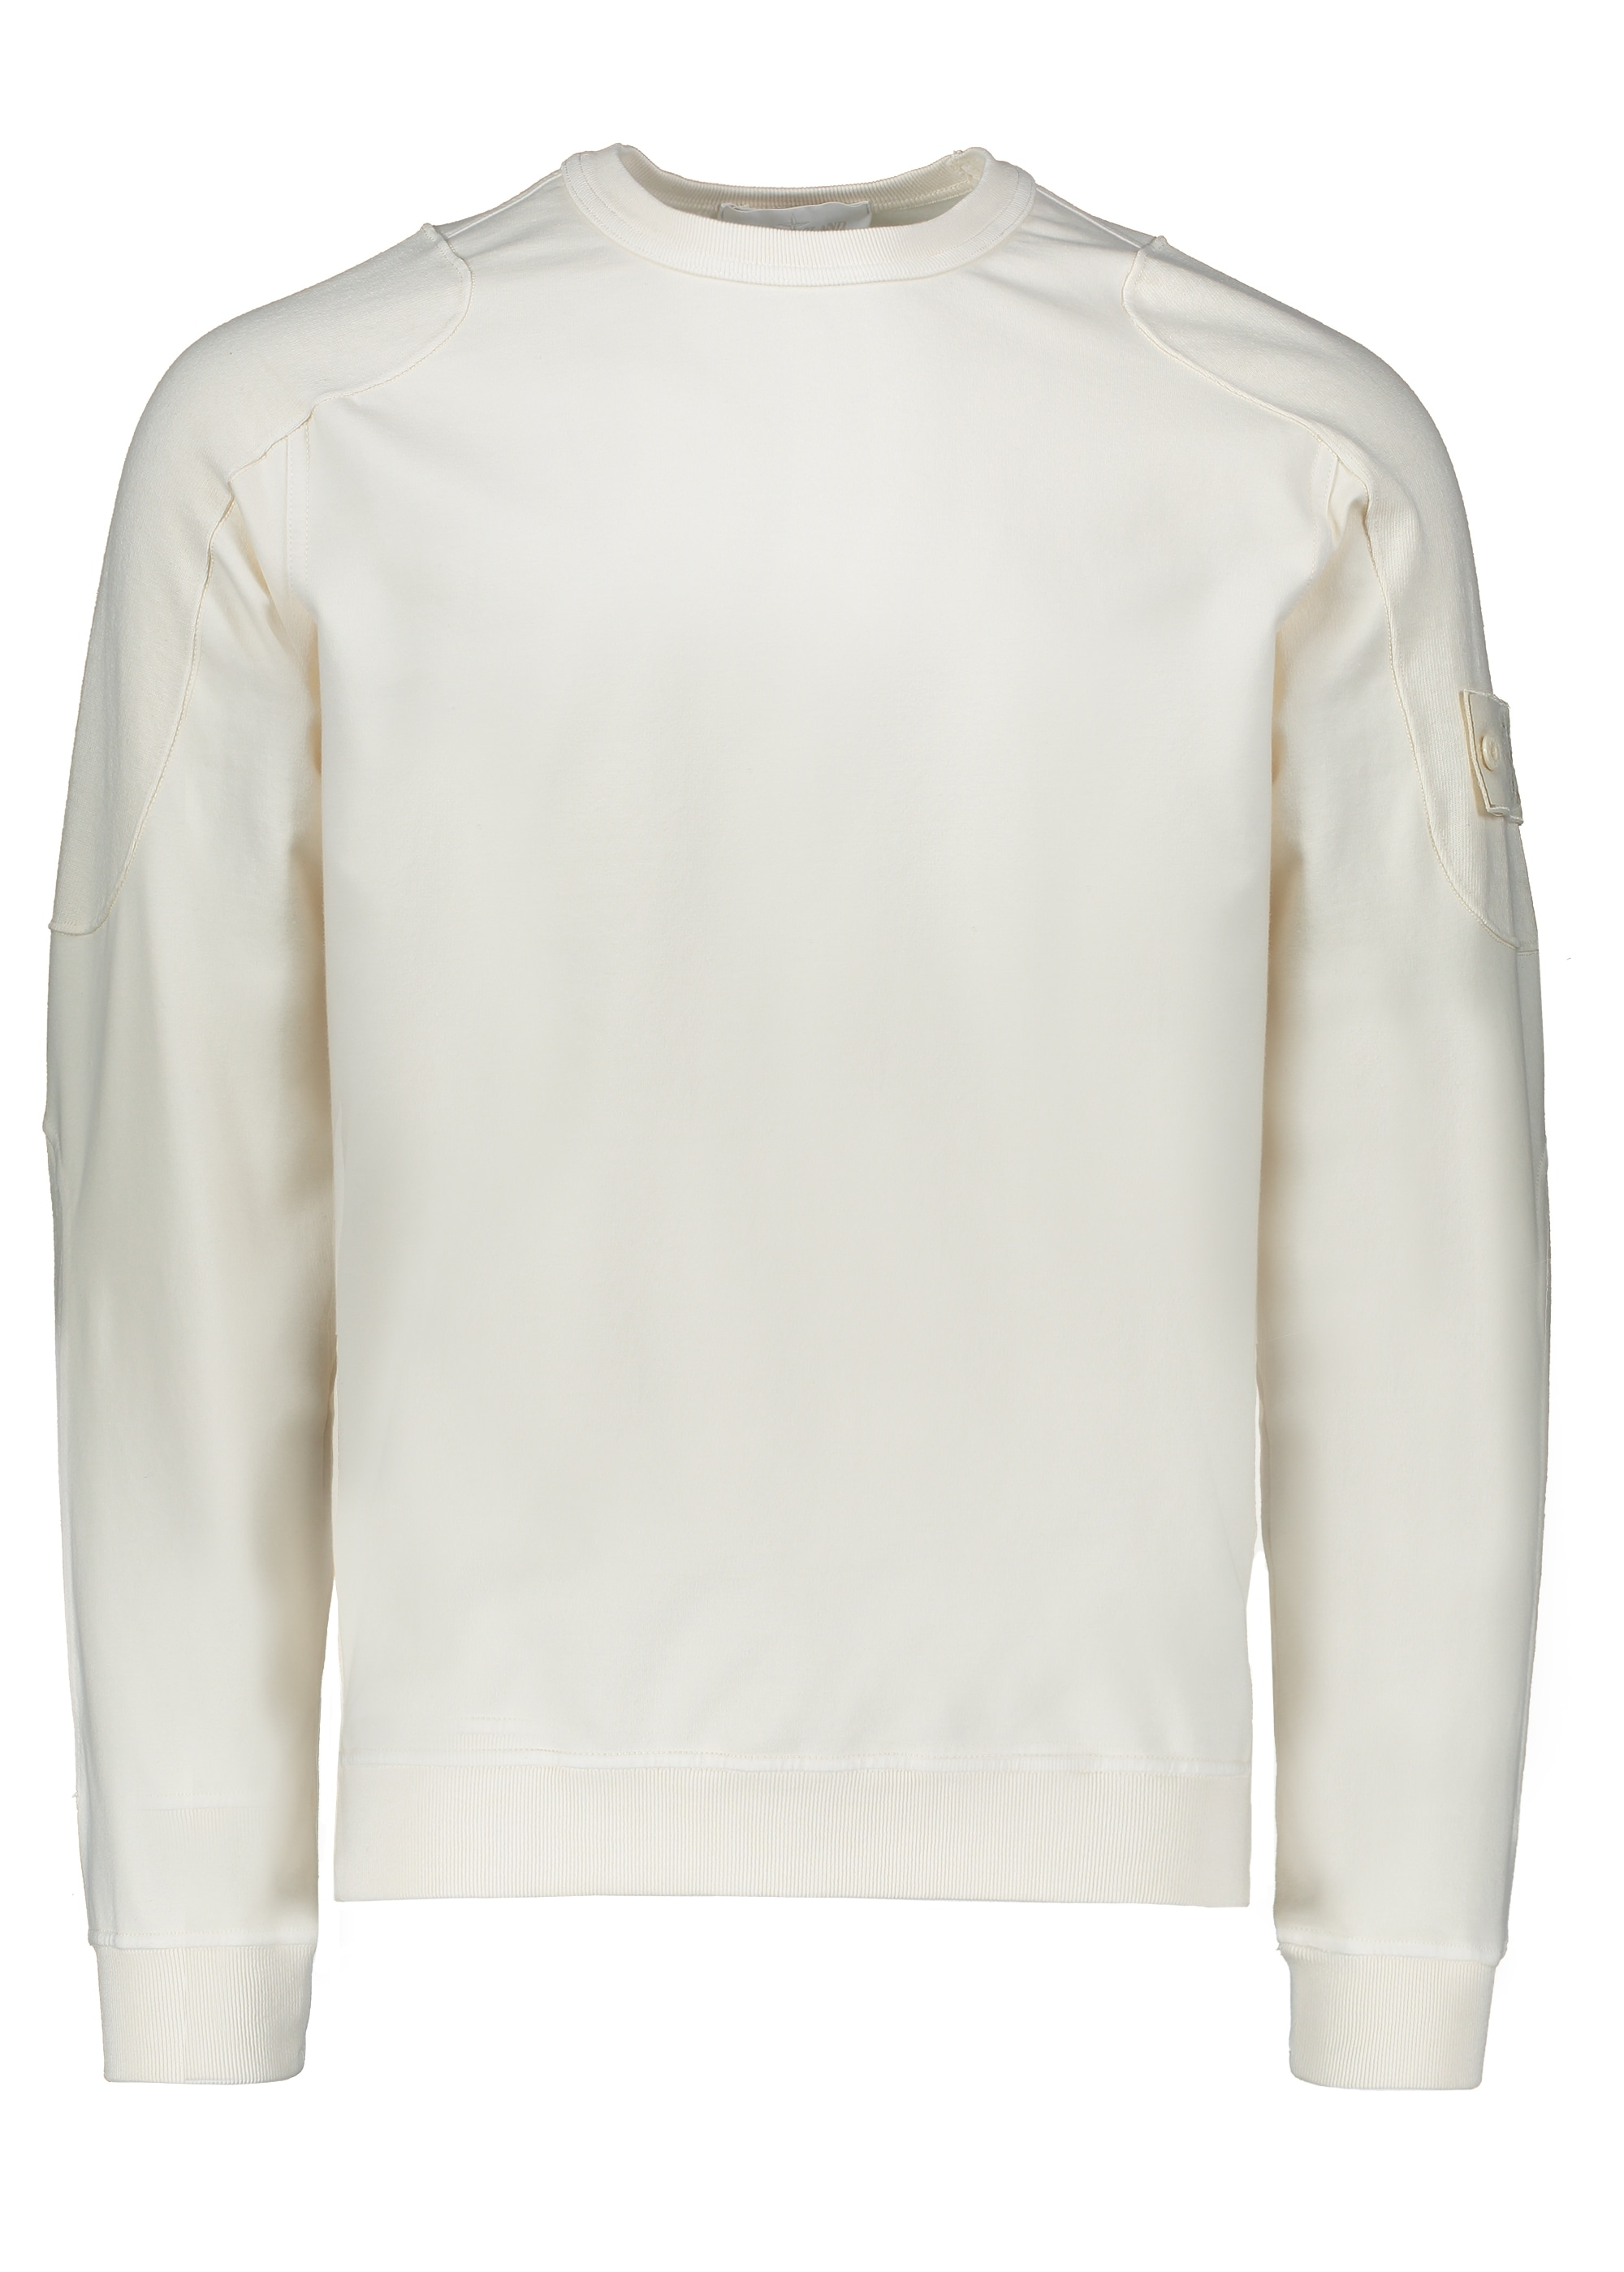 Stone Island Ghost Patch Crew Natural Sweatshirts From Triads Uk